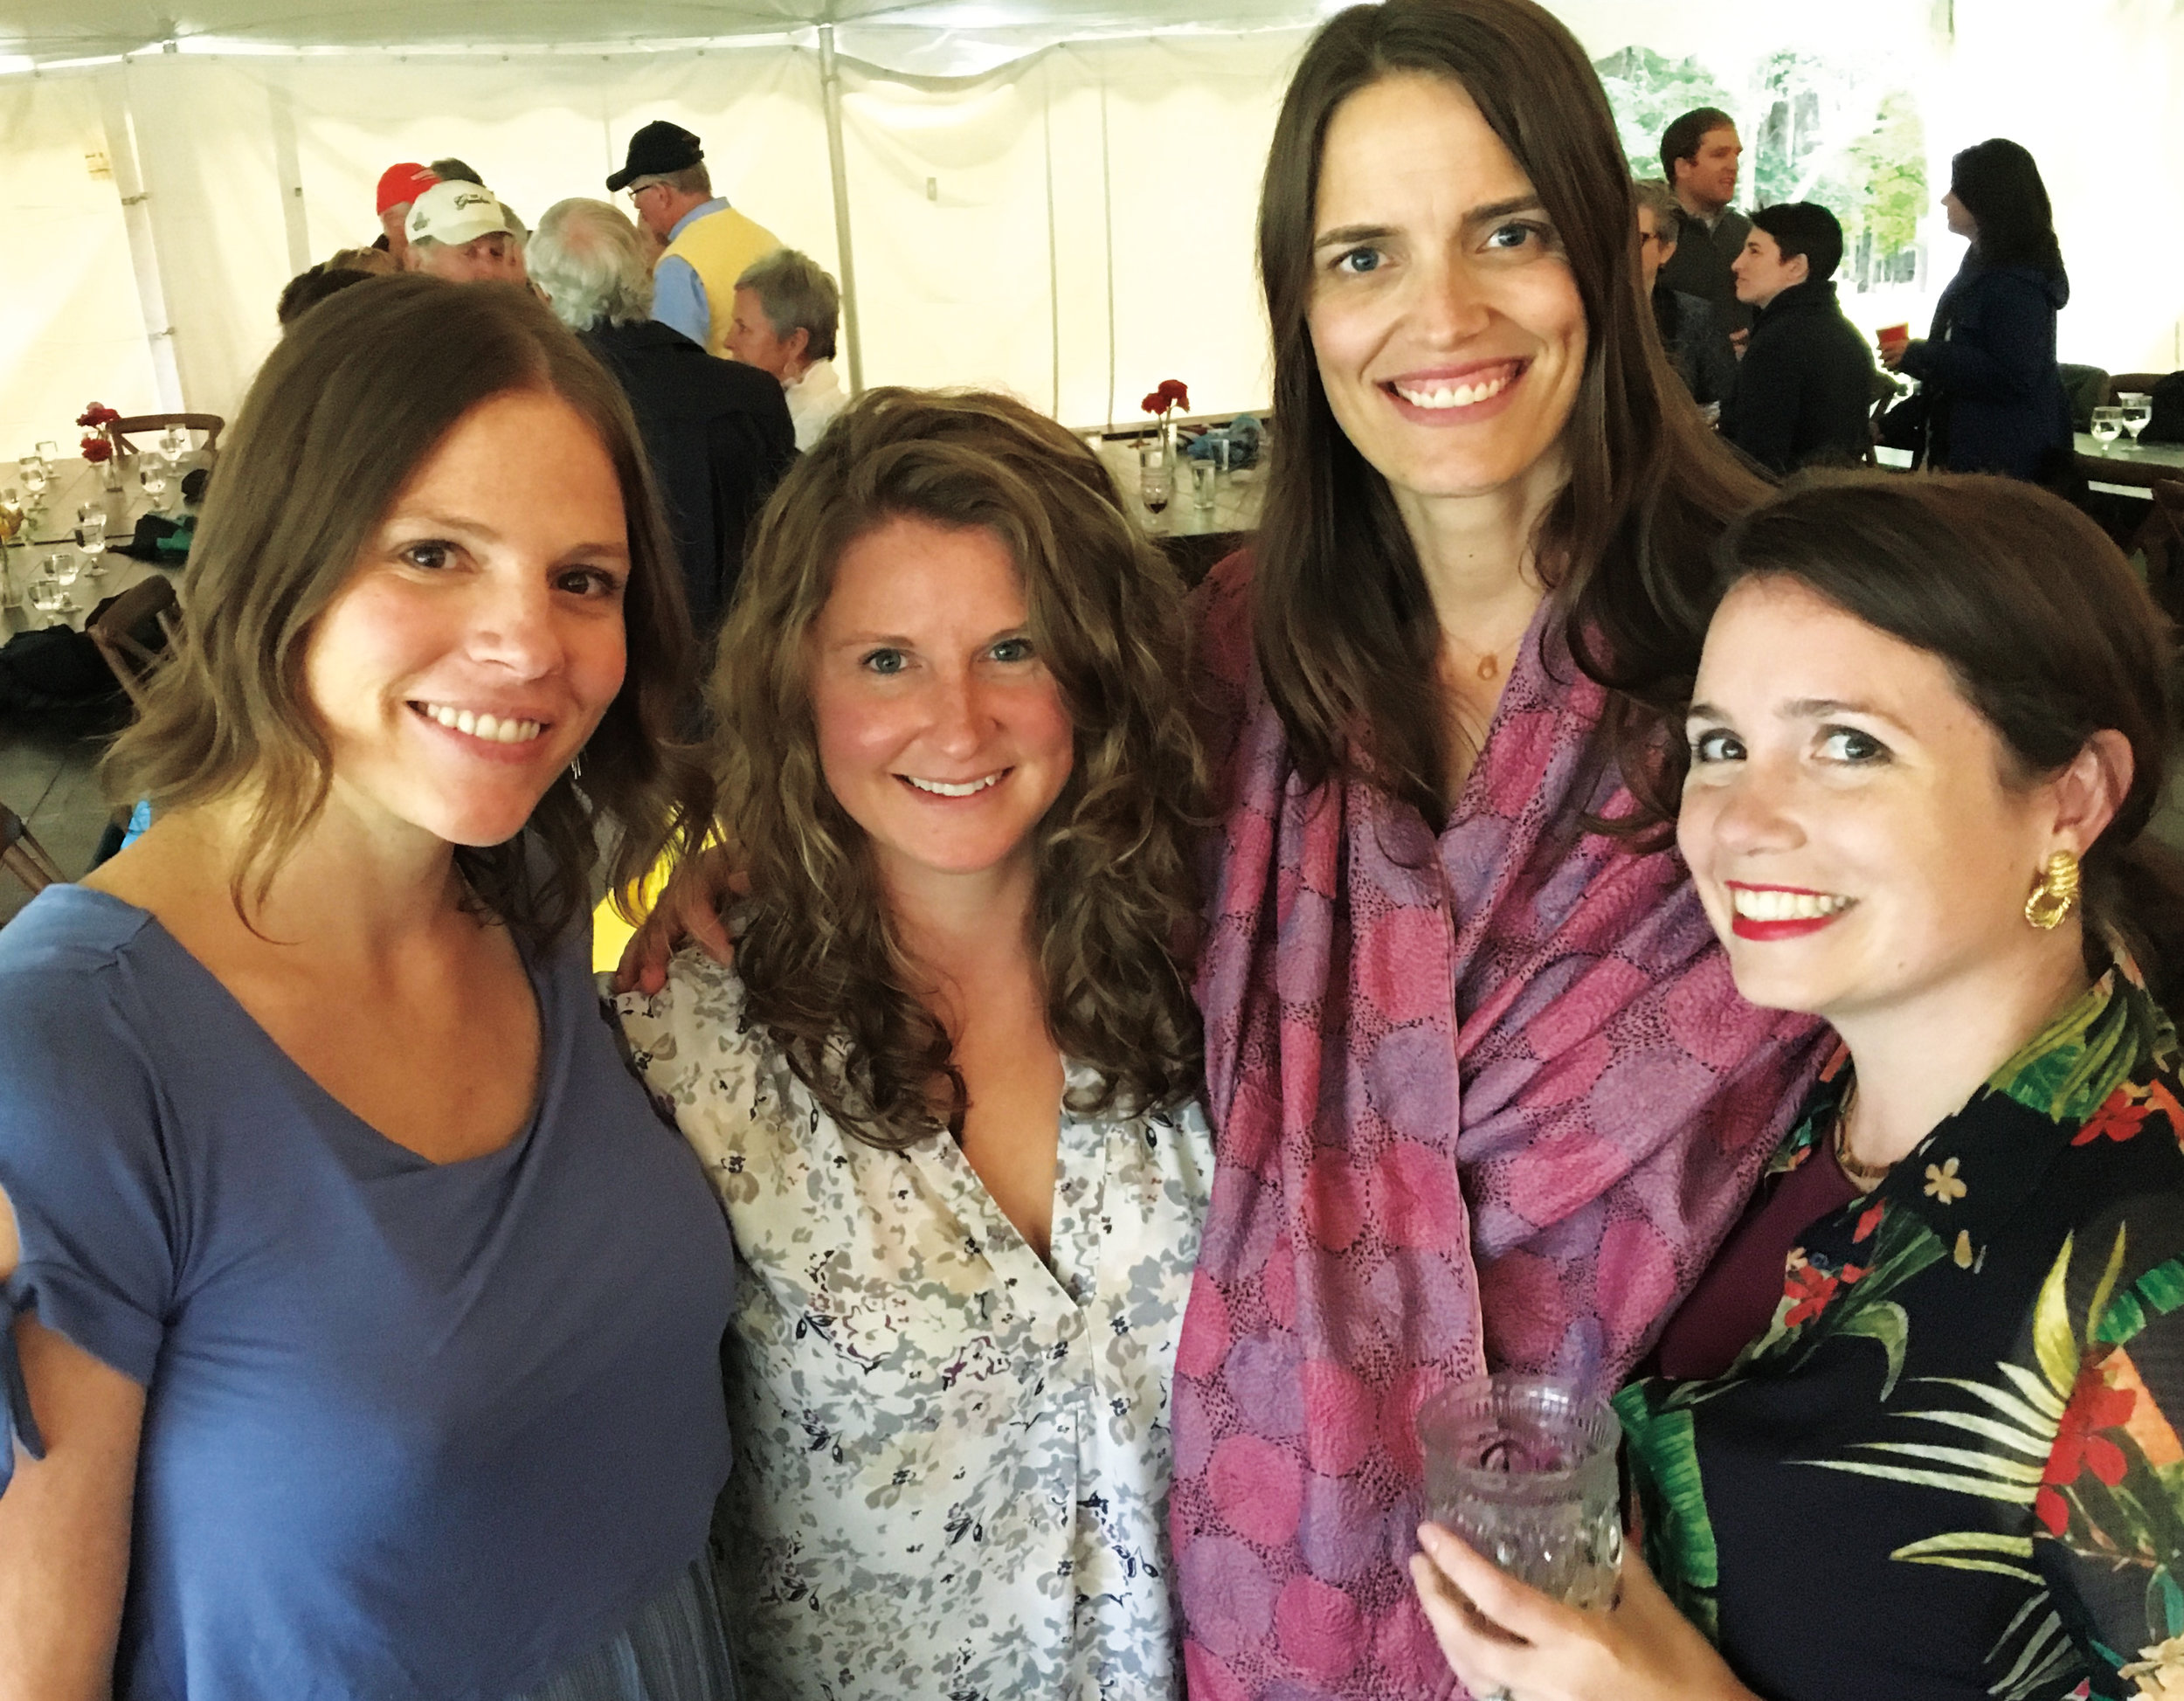 (L. to r.) Greta Braddock '99, Keely Schmidt '99, Lida Shepherd '99, and Cybil Gregory Roehrenbeck '99 were on hand to celebrate Lida's marriage